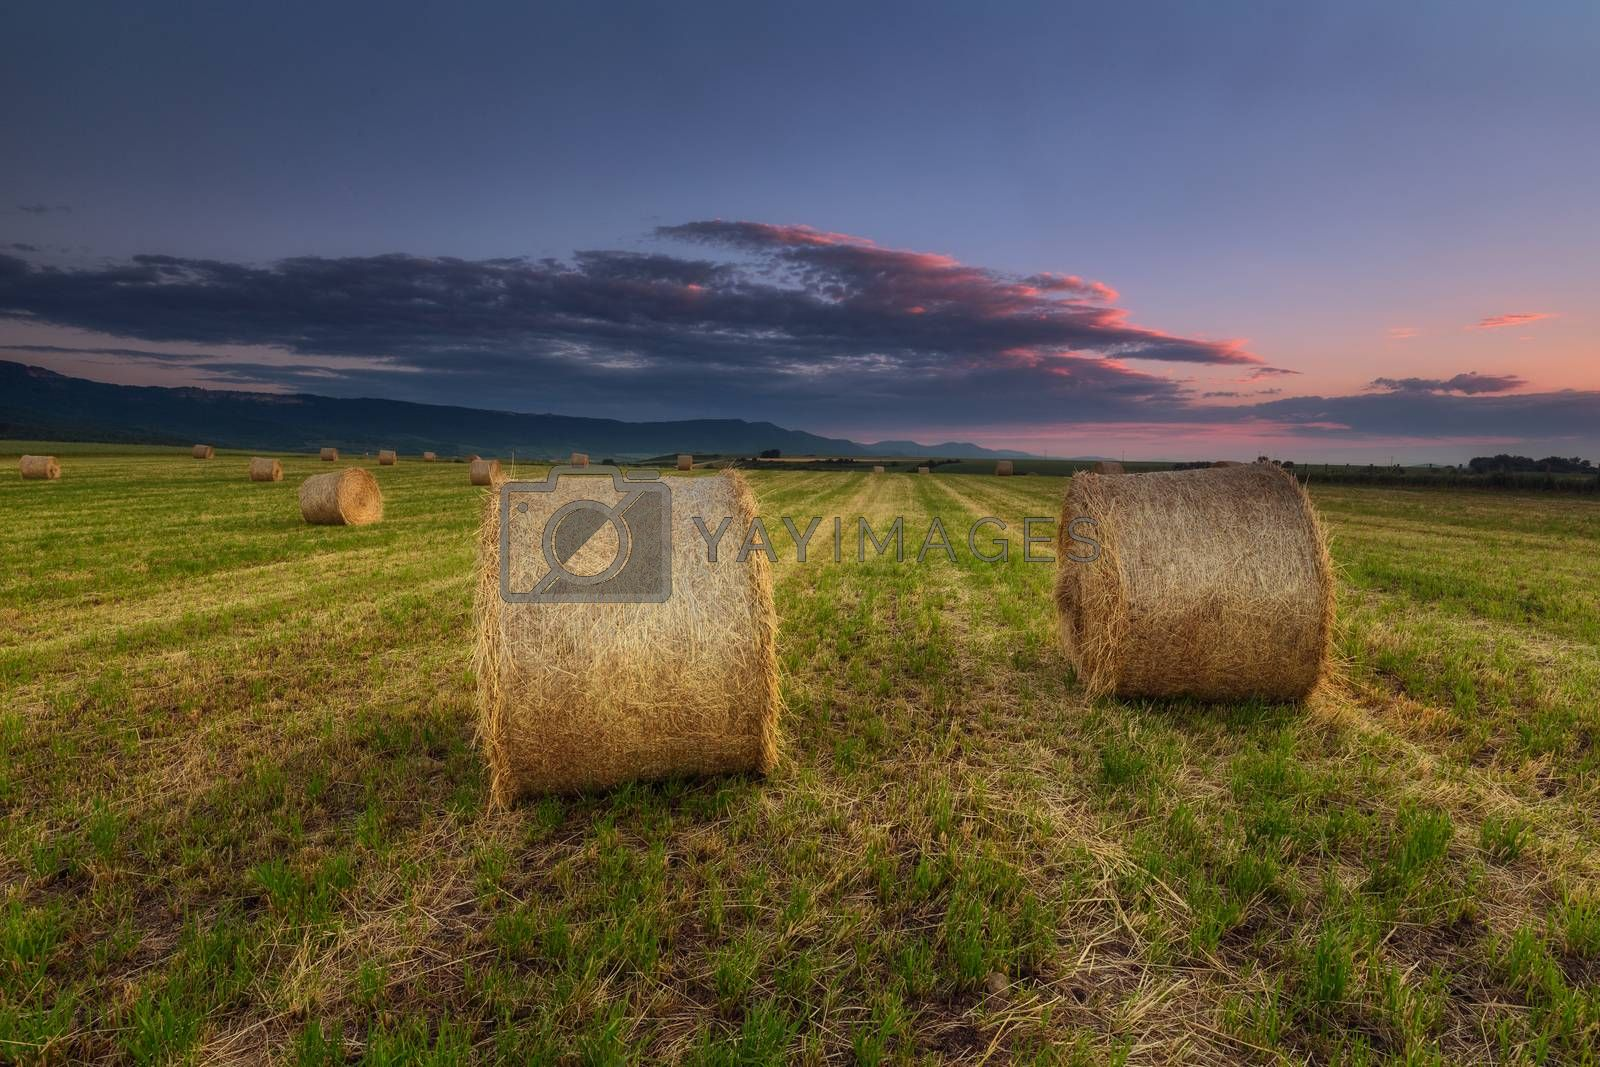 Harvest time, bundles in the field